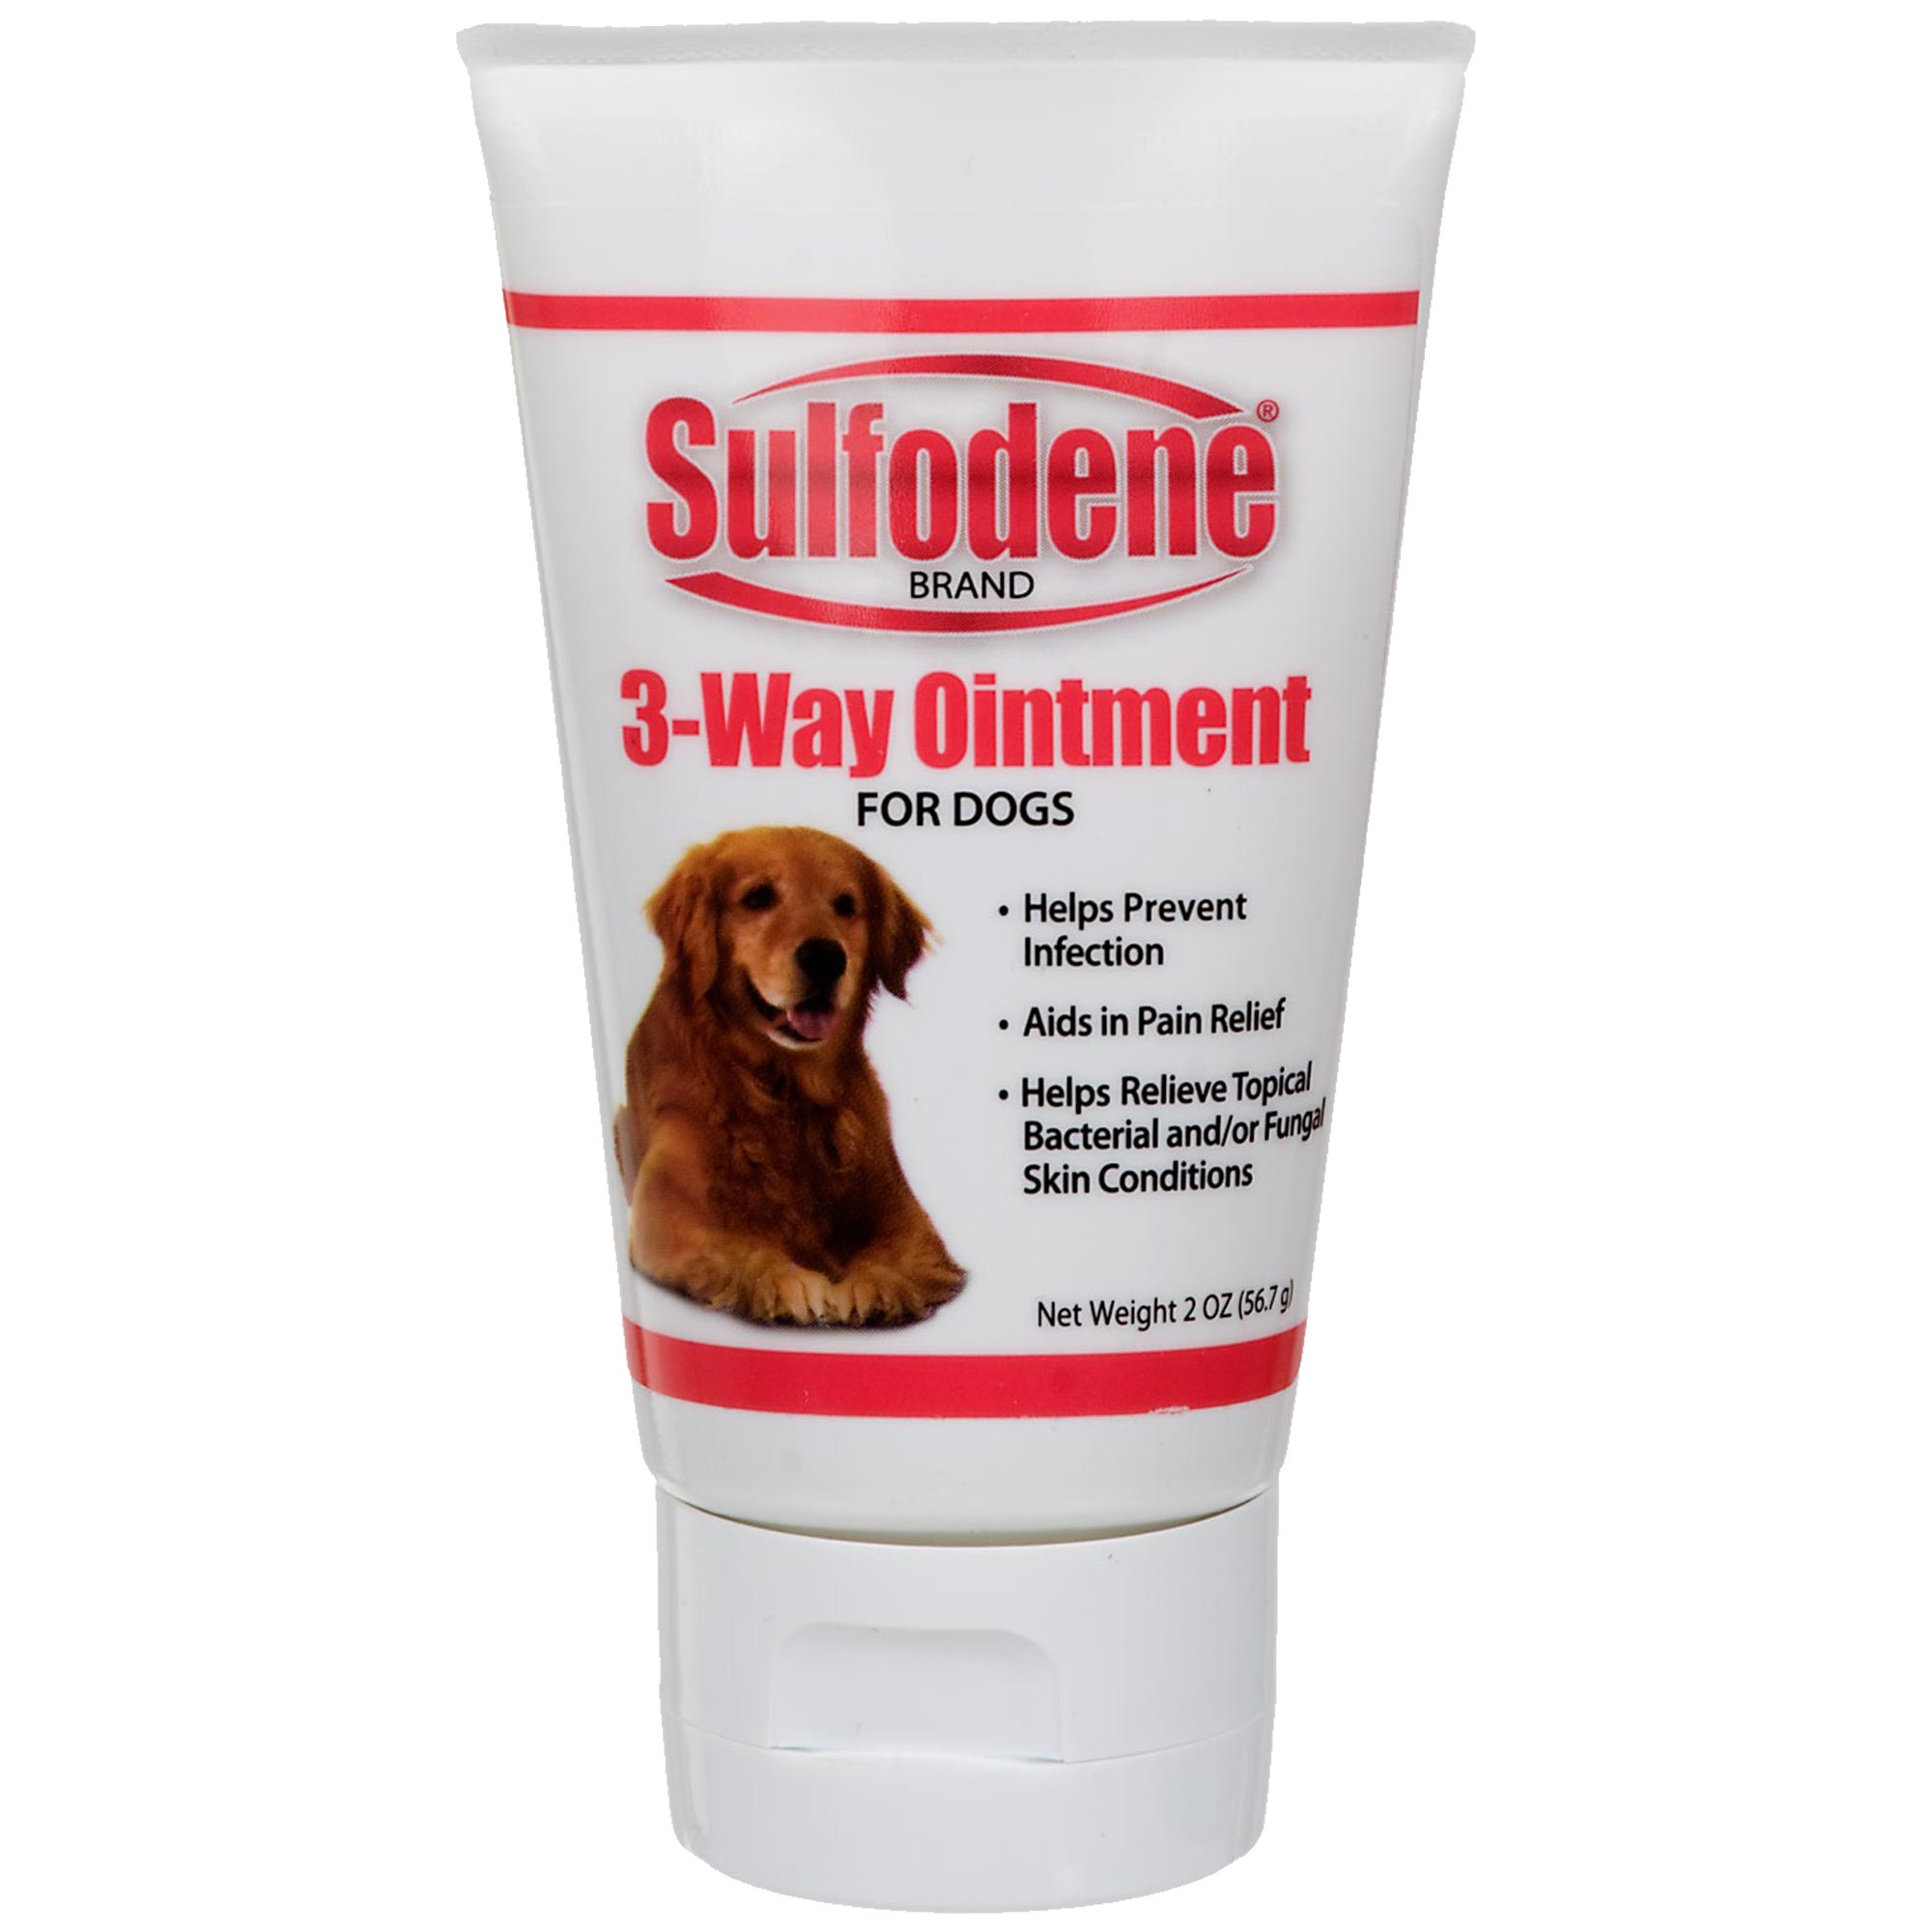 Sulfodene 3 way ointment for dogs petco for Fish amoxicillin petco